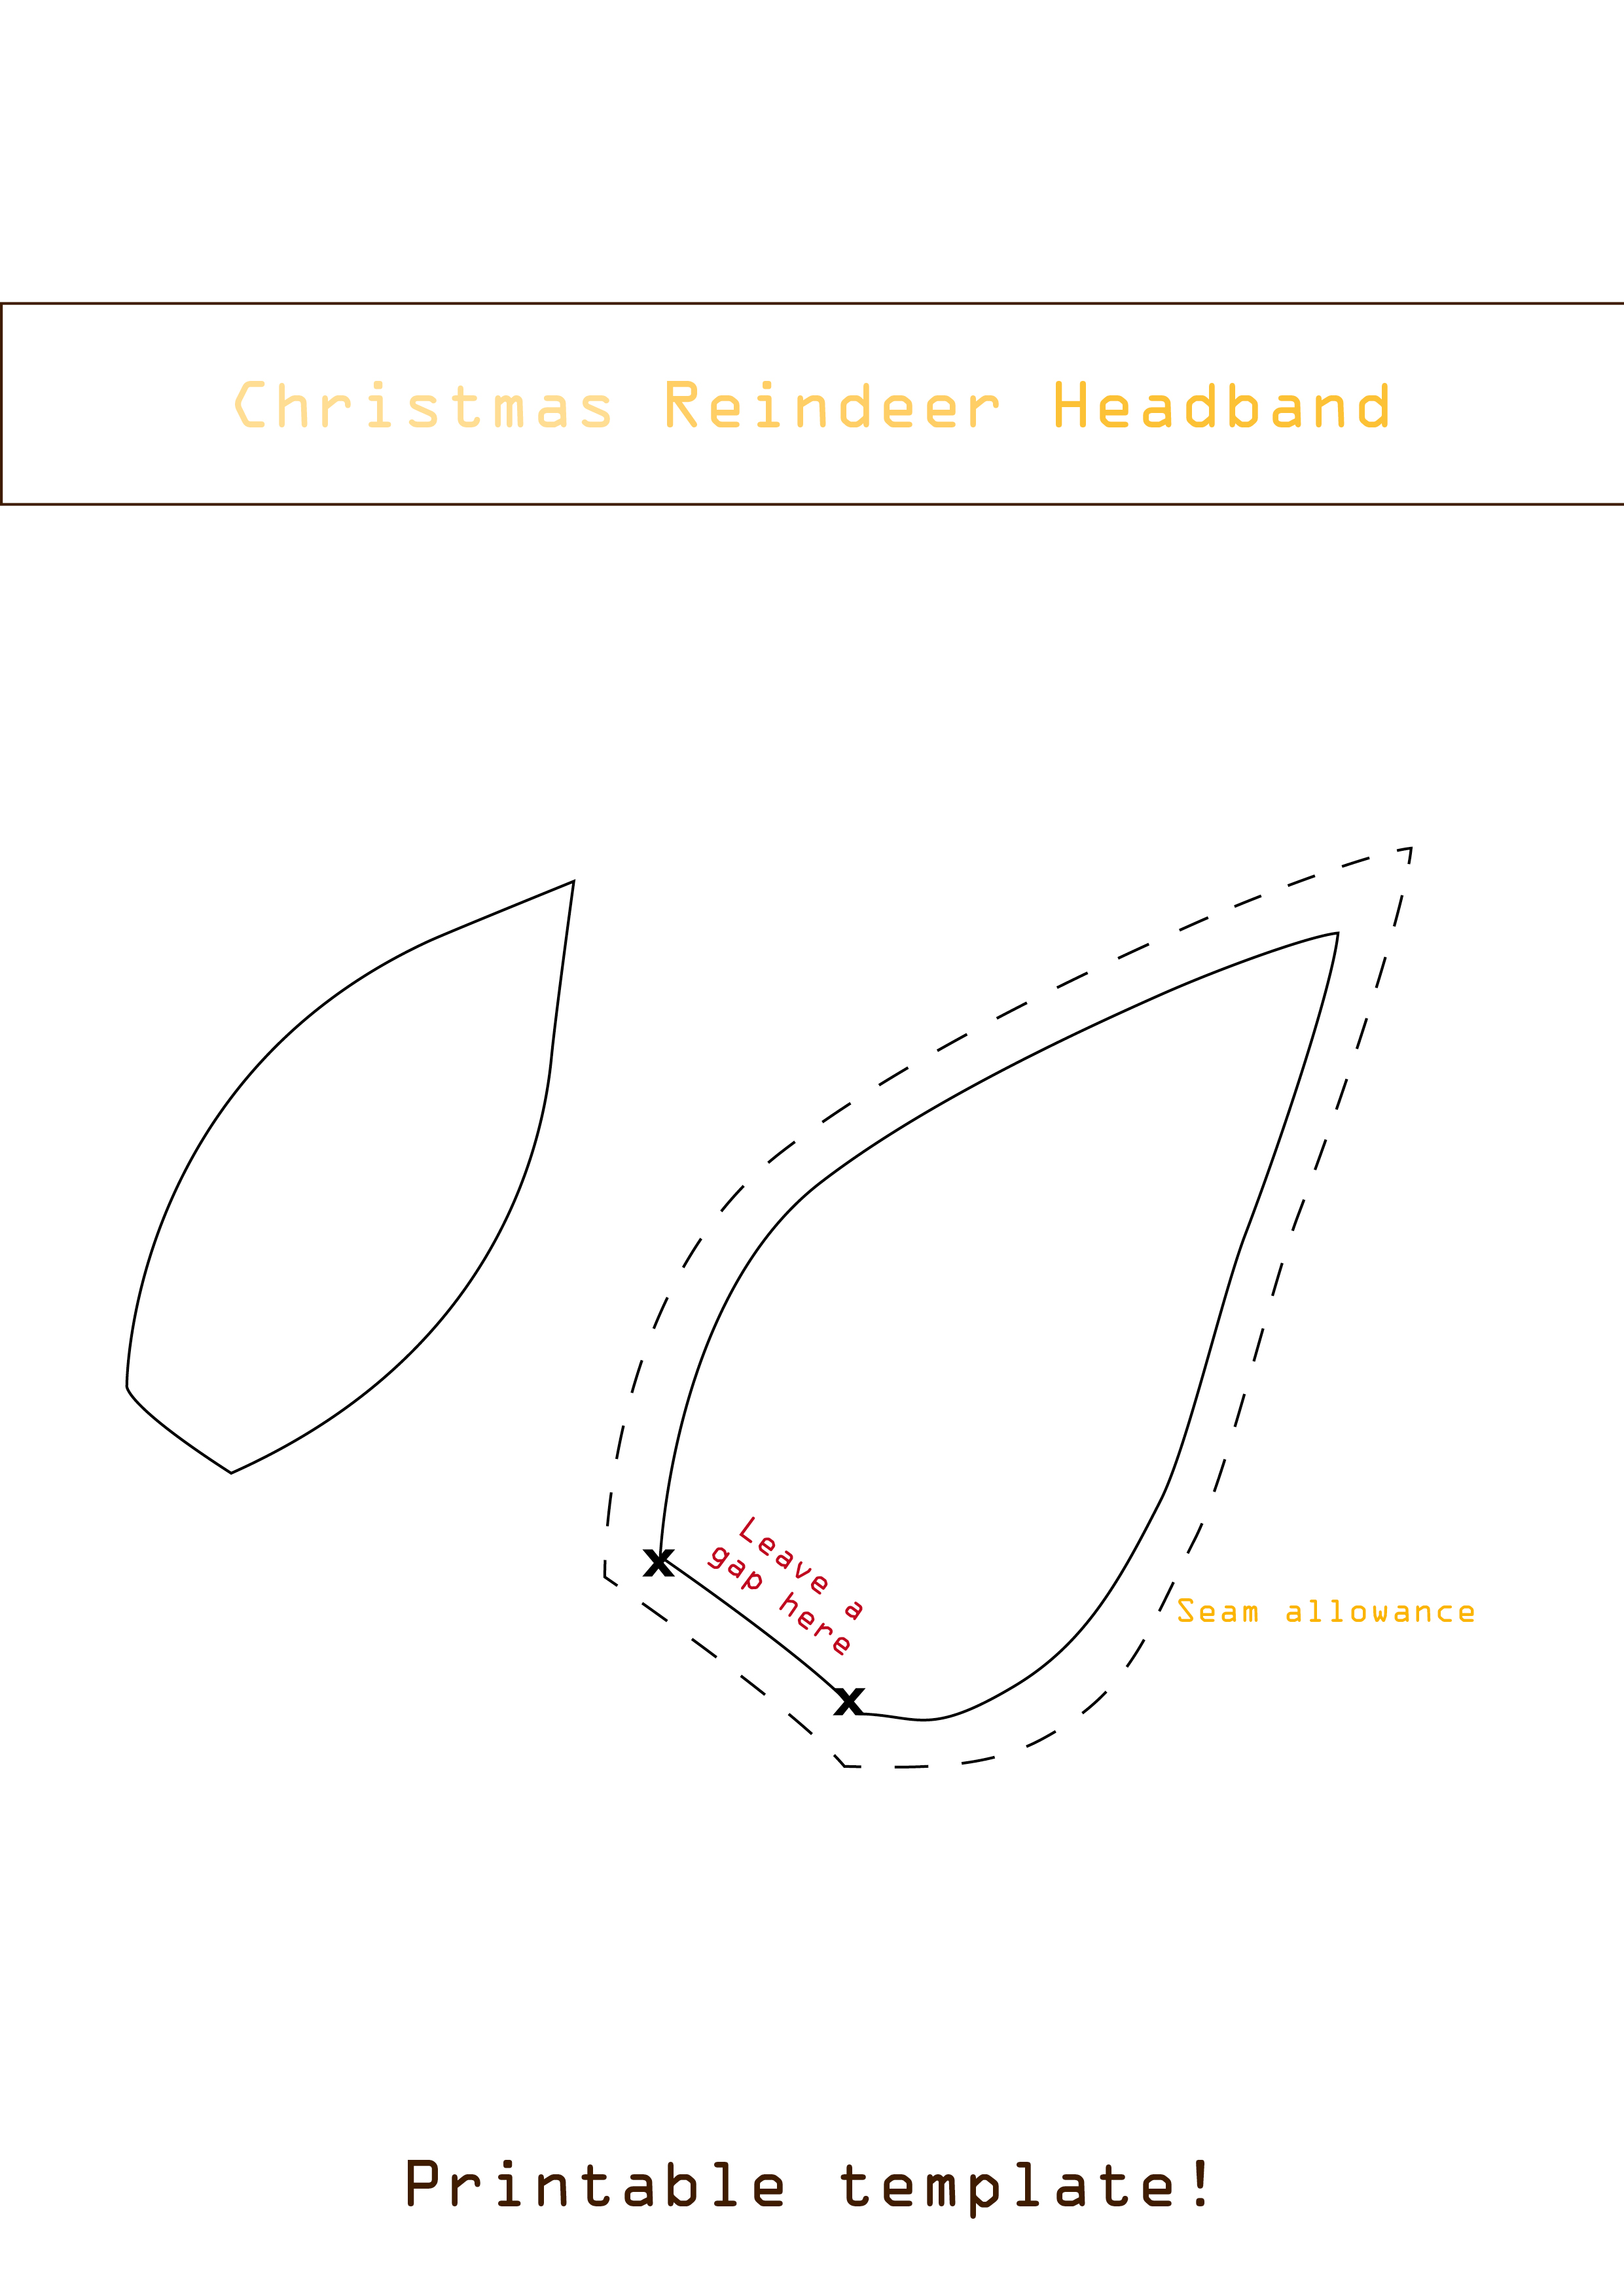 Easy diy christmas reindeer headband for your baby for Reindeer tail template